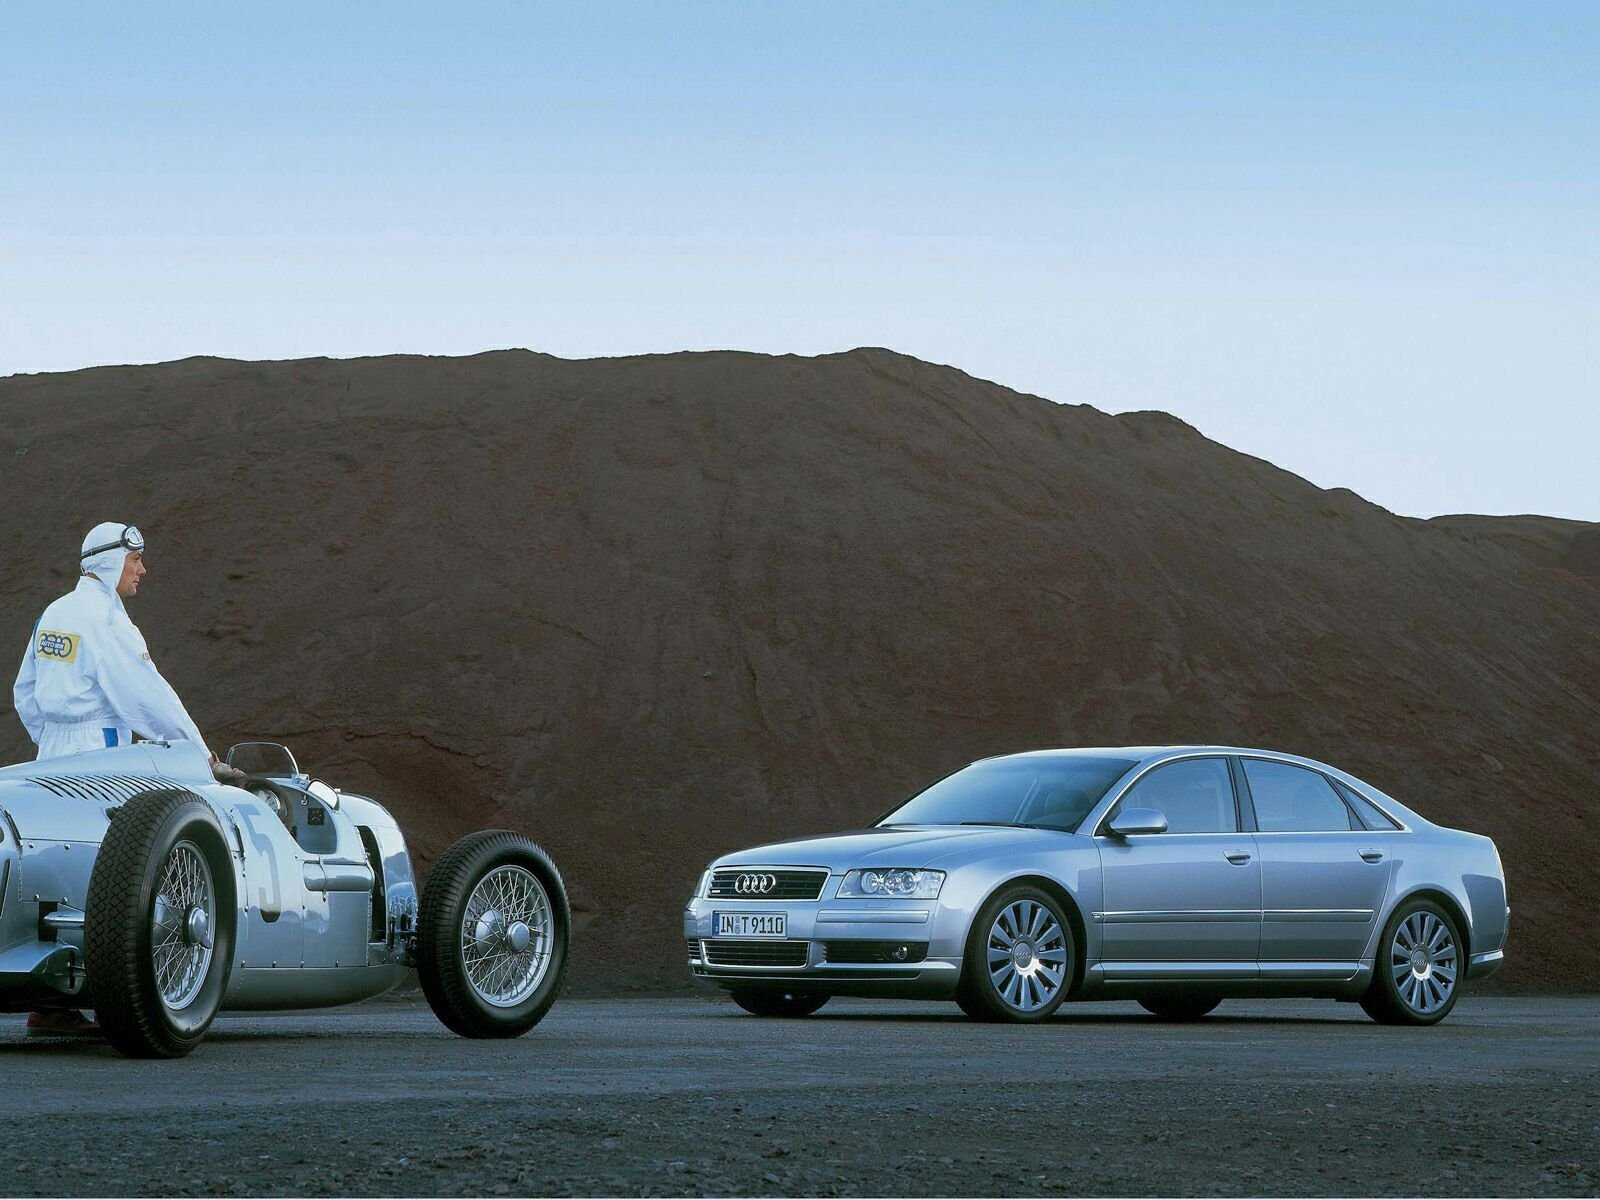 2004 audi a8 picture 30053 car review top speed. Black Bedroom Furniture Sets. Home Design Ideas